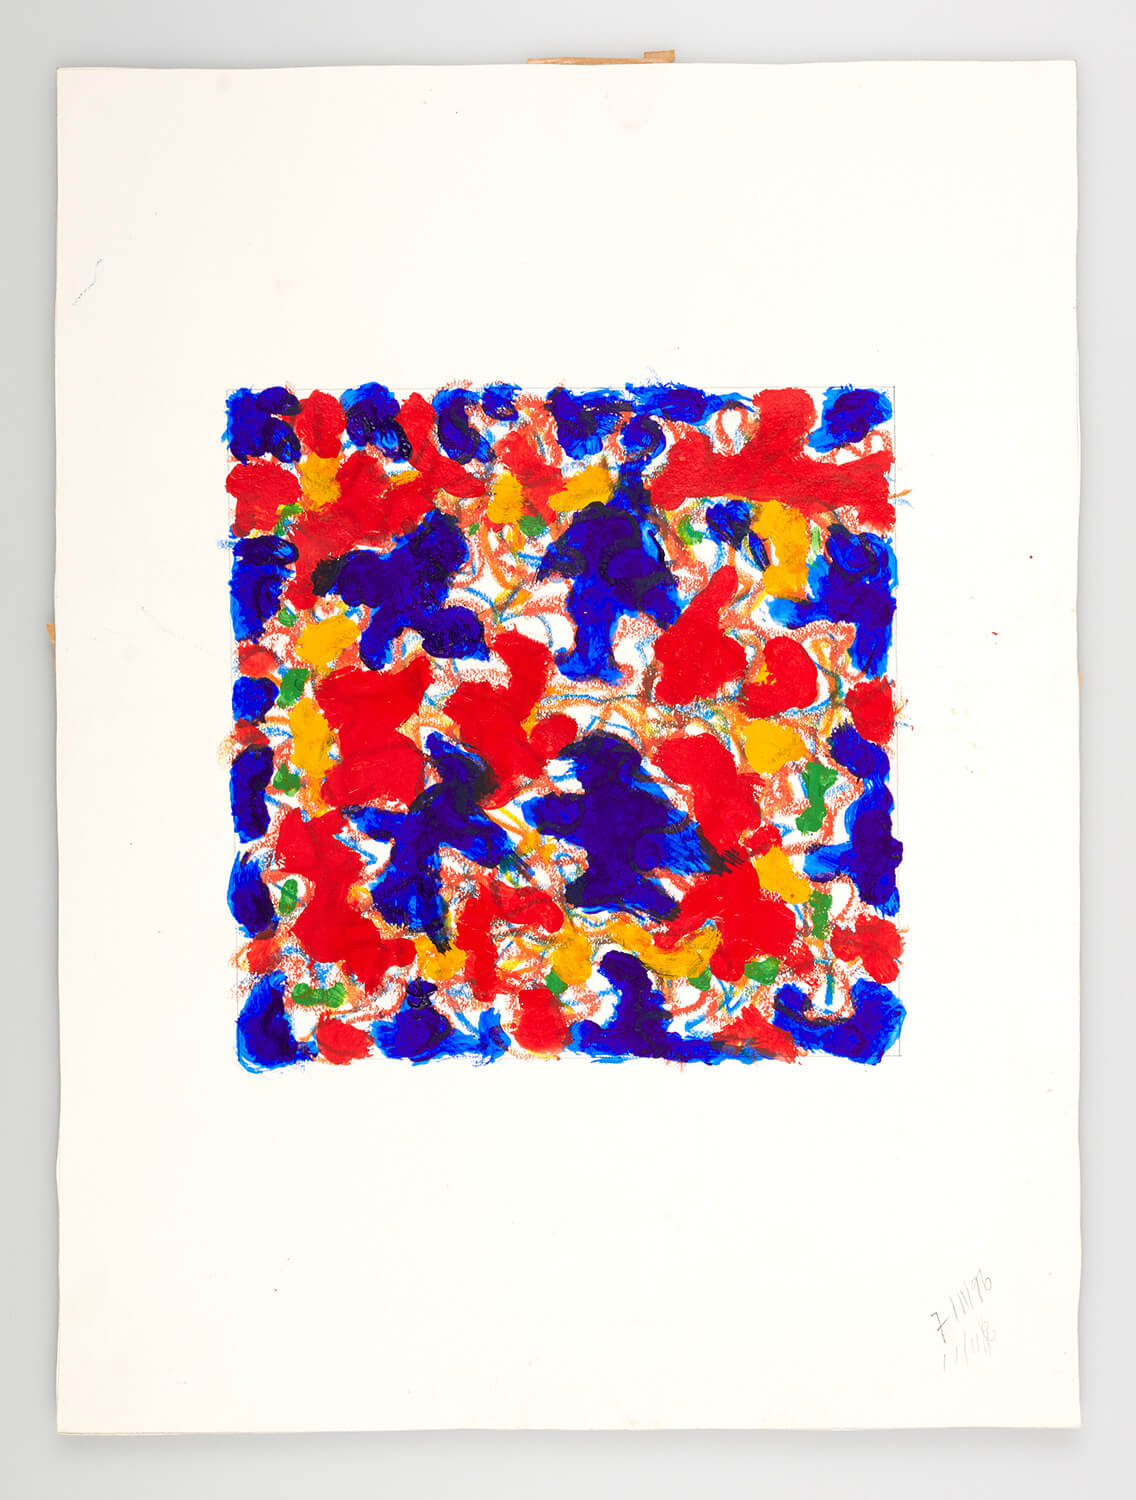 JB134 - Abstract Red and Blue - 1996 - 25 x 25 cm - Acrylic and conte on paper